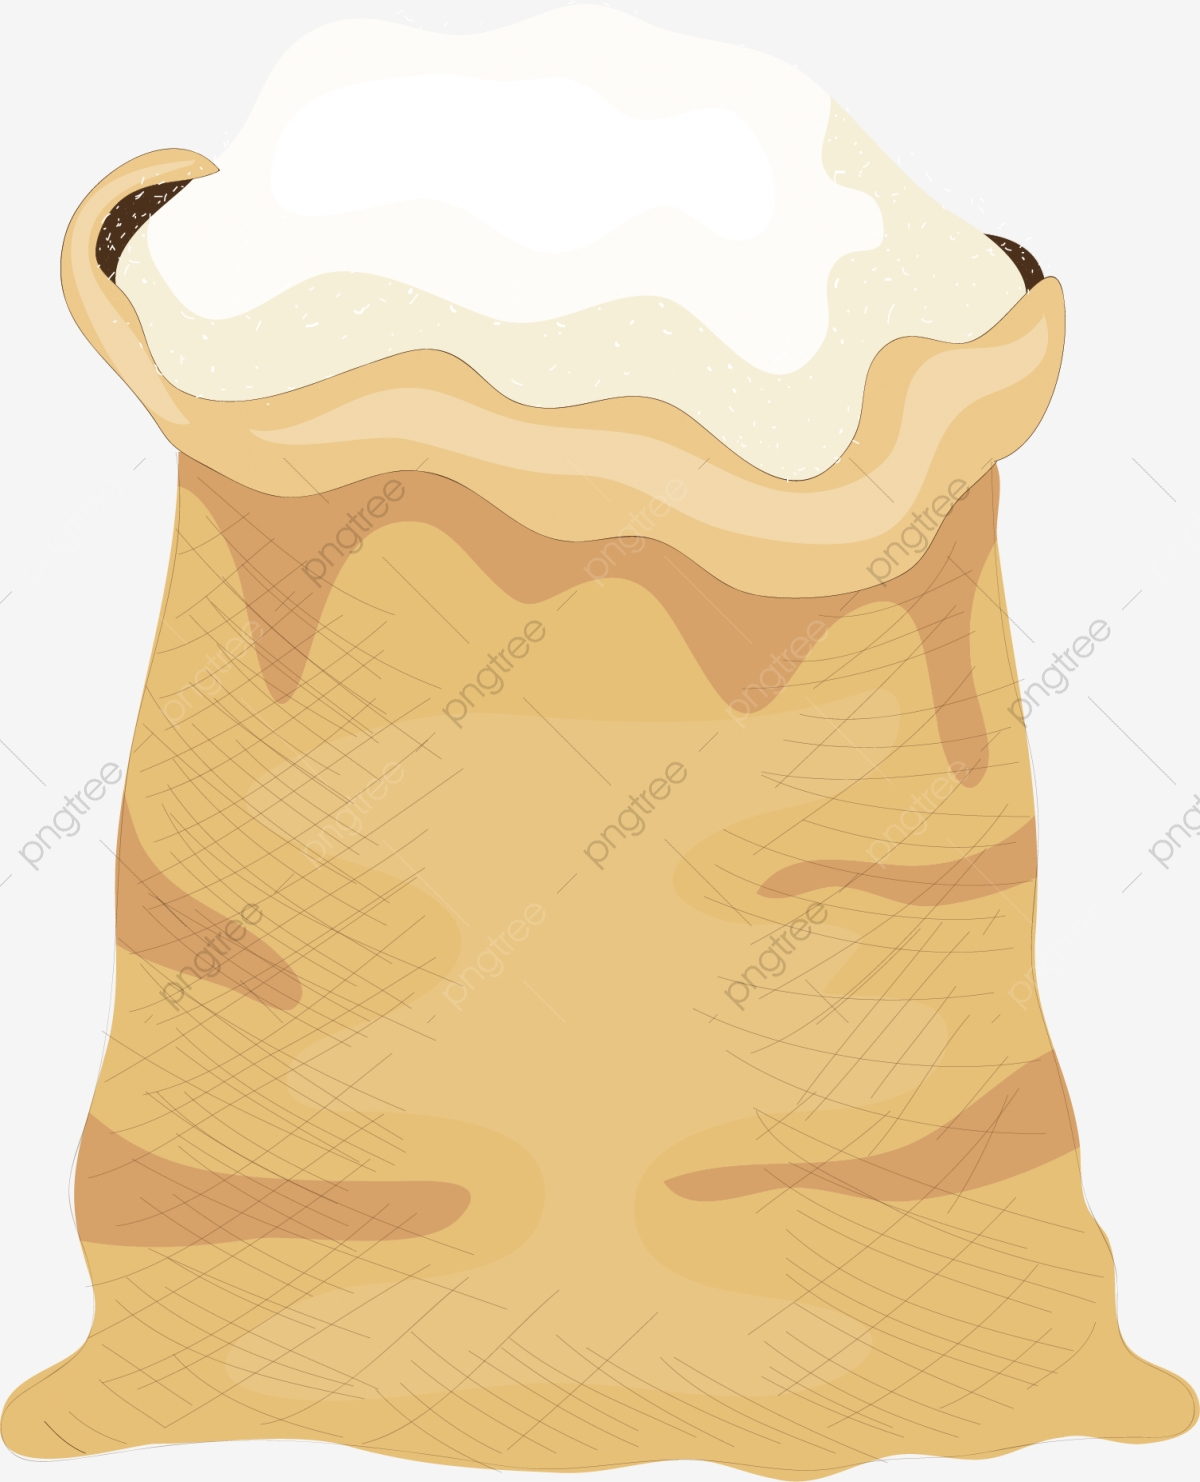 flour sack cartoon flour cartoon illustration creative cartoon illustration png and vector with transparent background for free download https pngtree com freepng flour sack cartoon flour 3945561 html